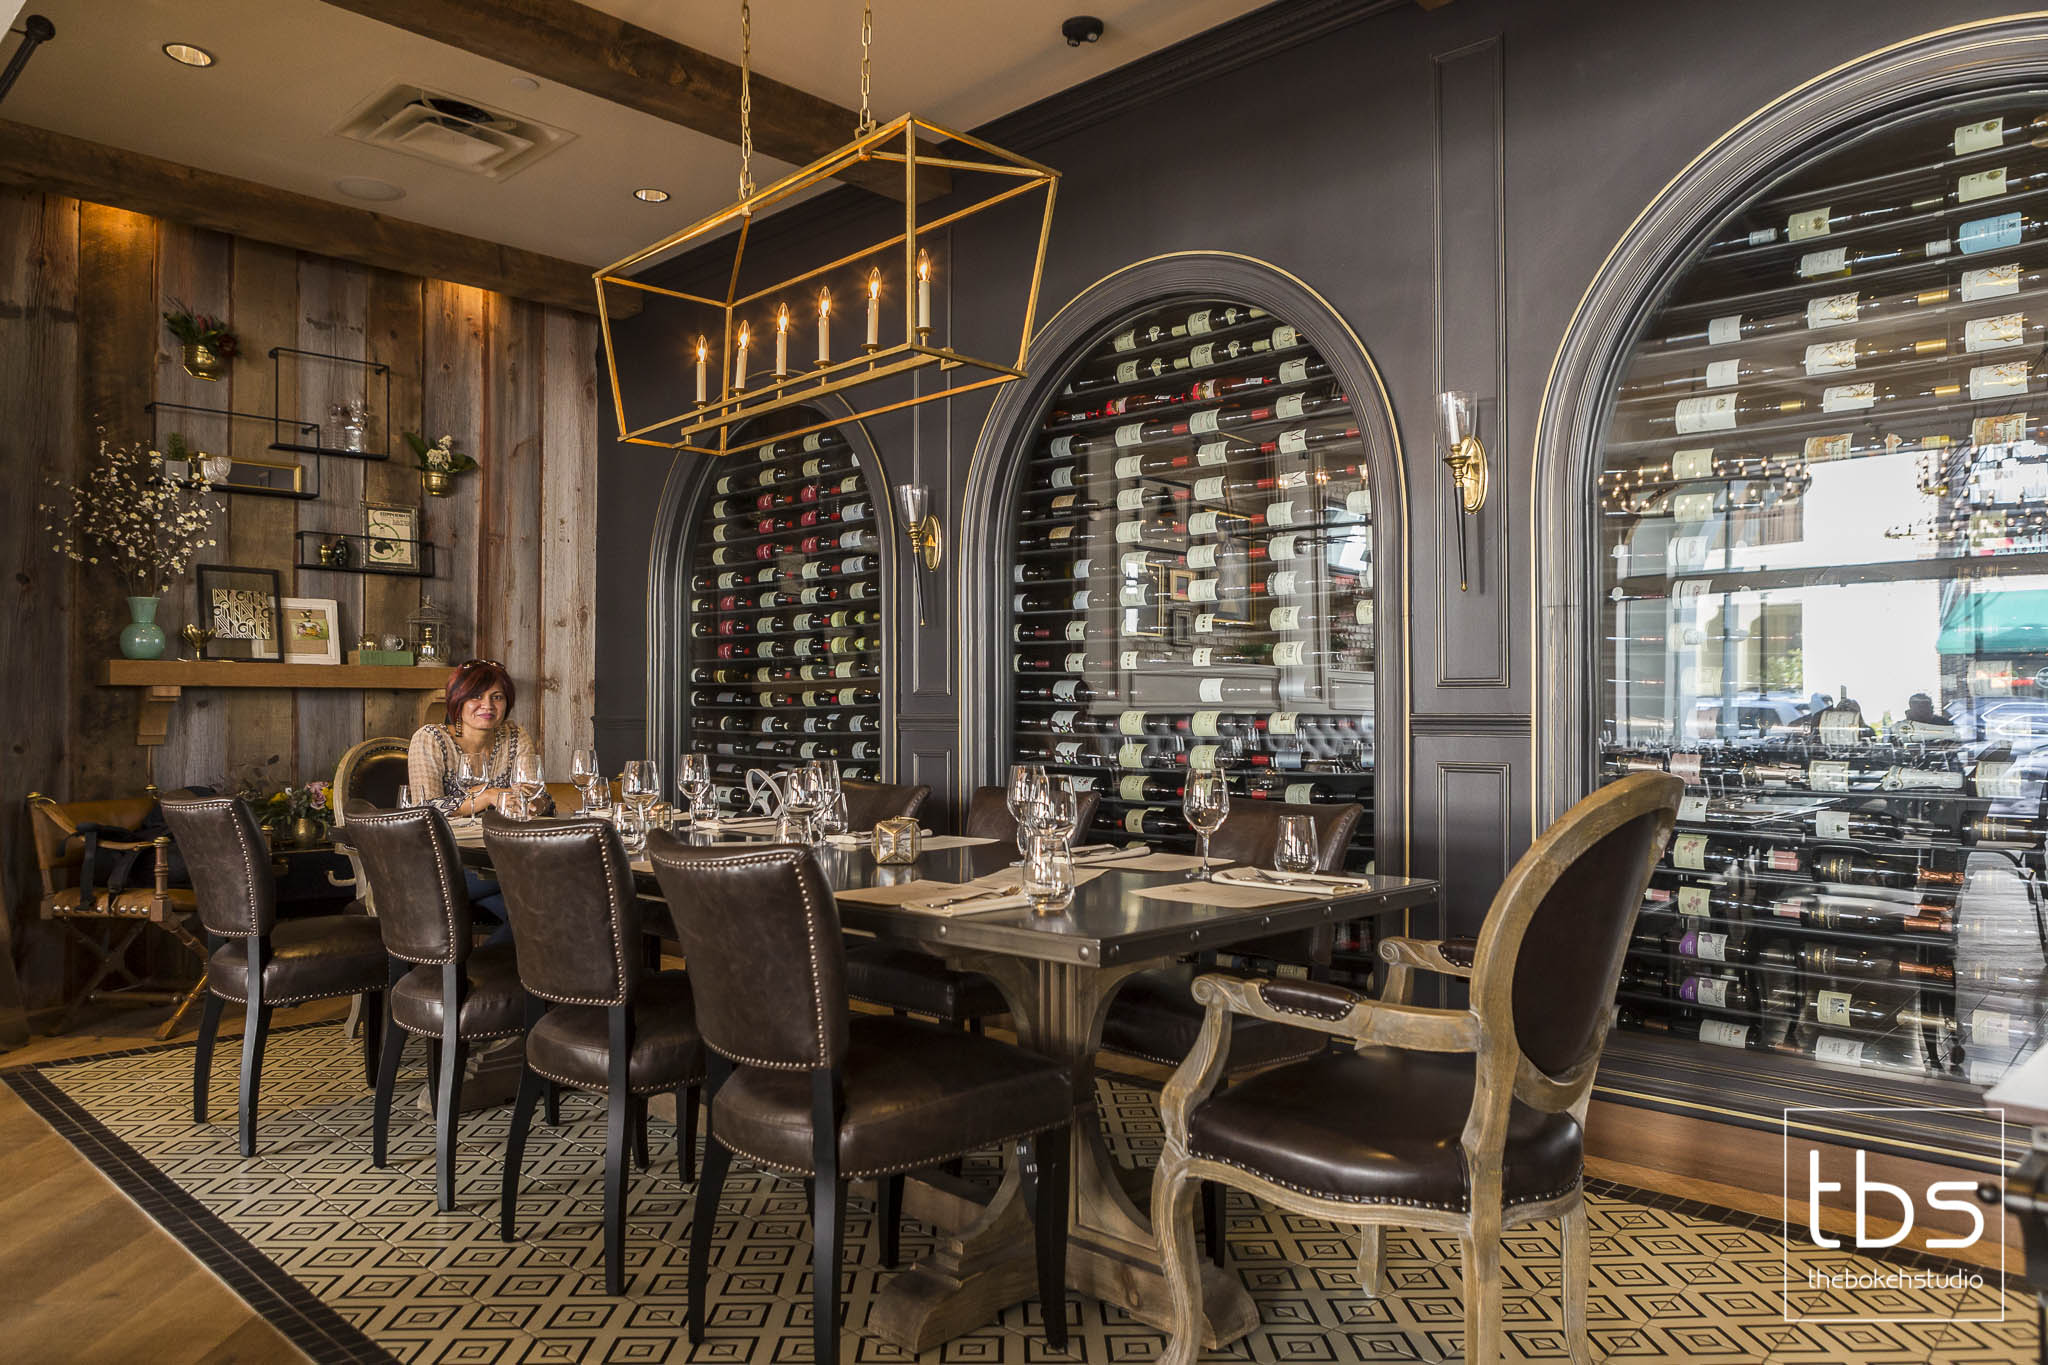 the primlani kitchen covering central florida food and wine events